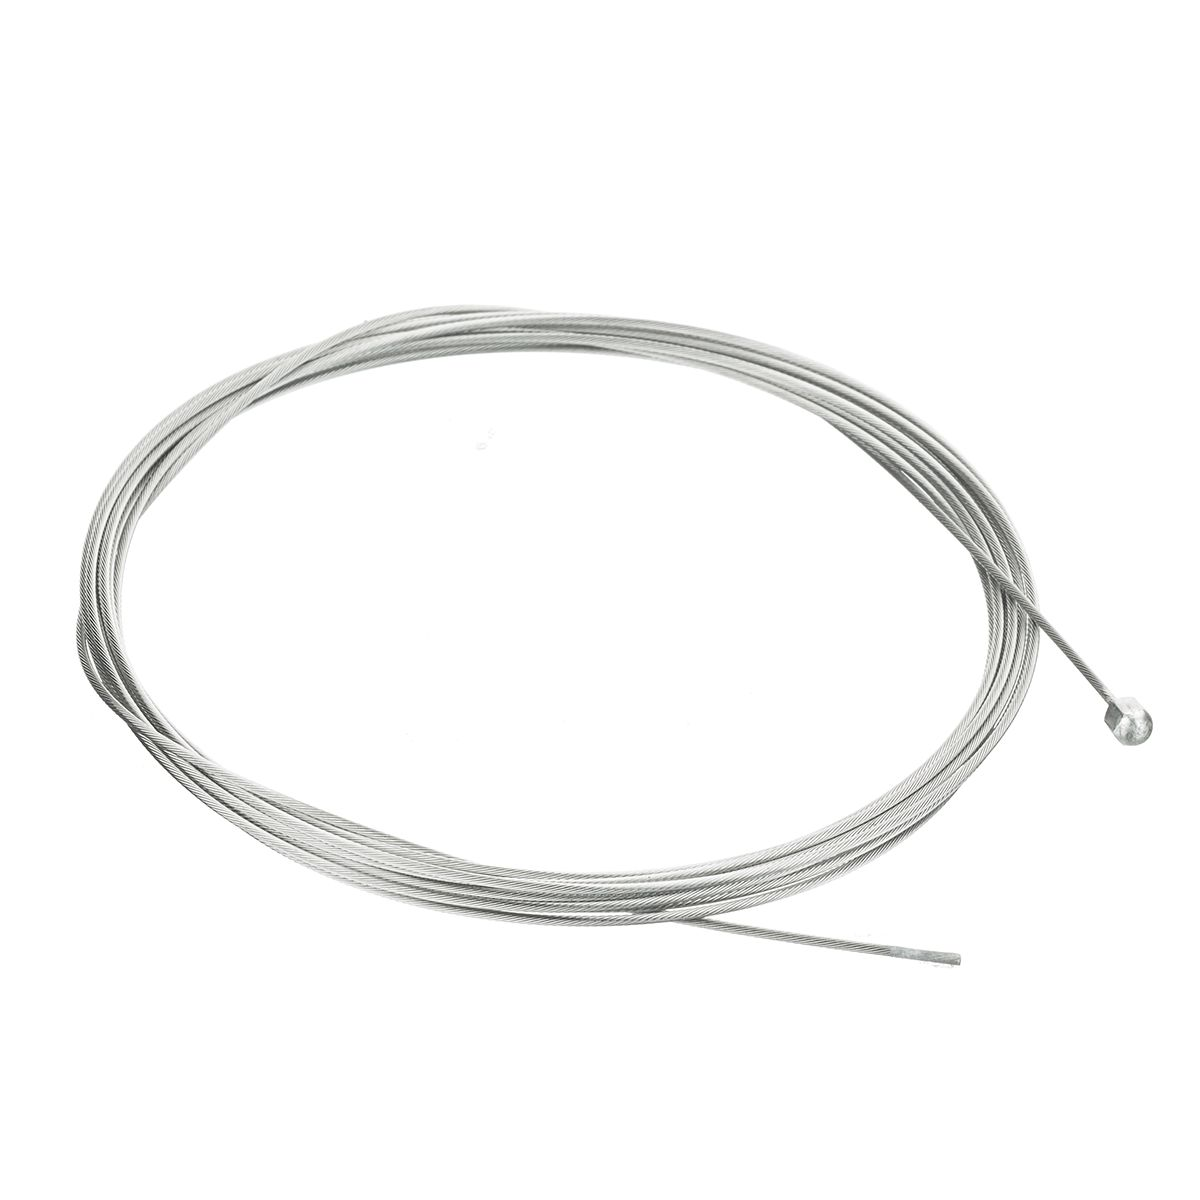 Hartmann Shift cable for tandems | City